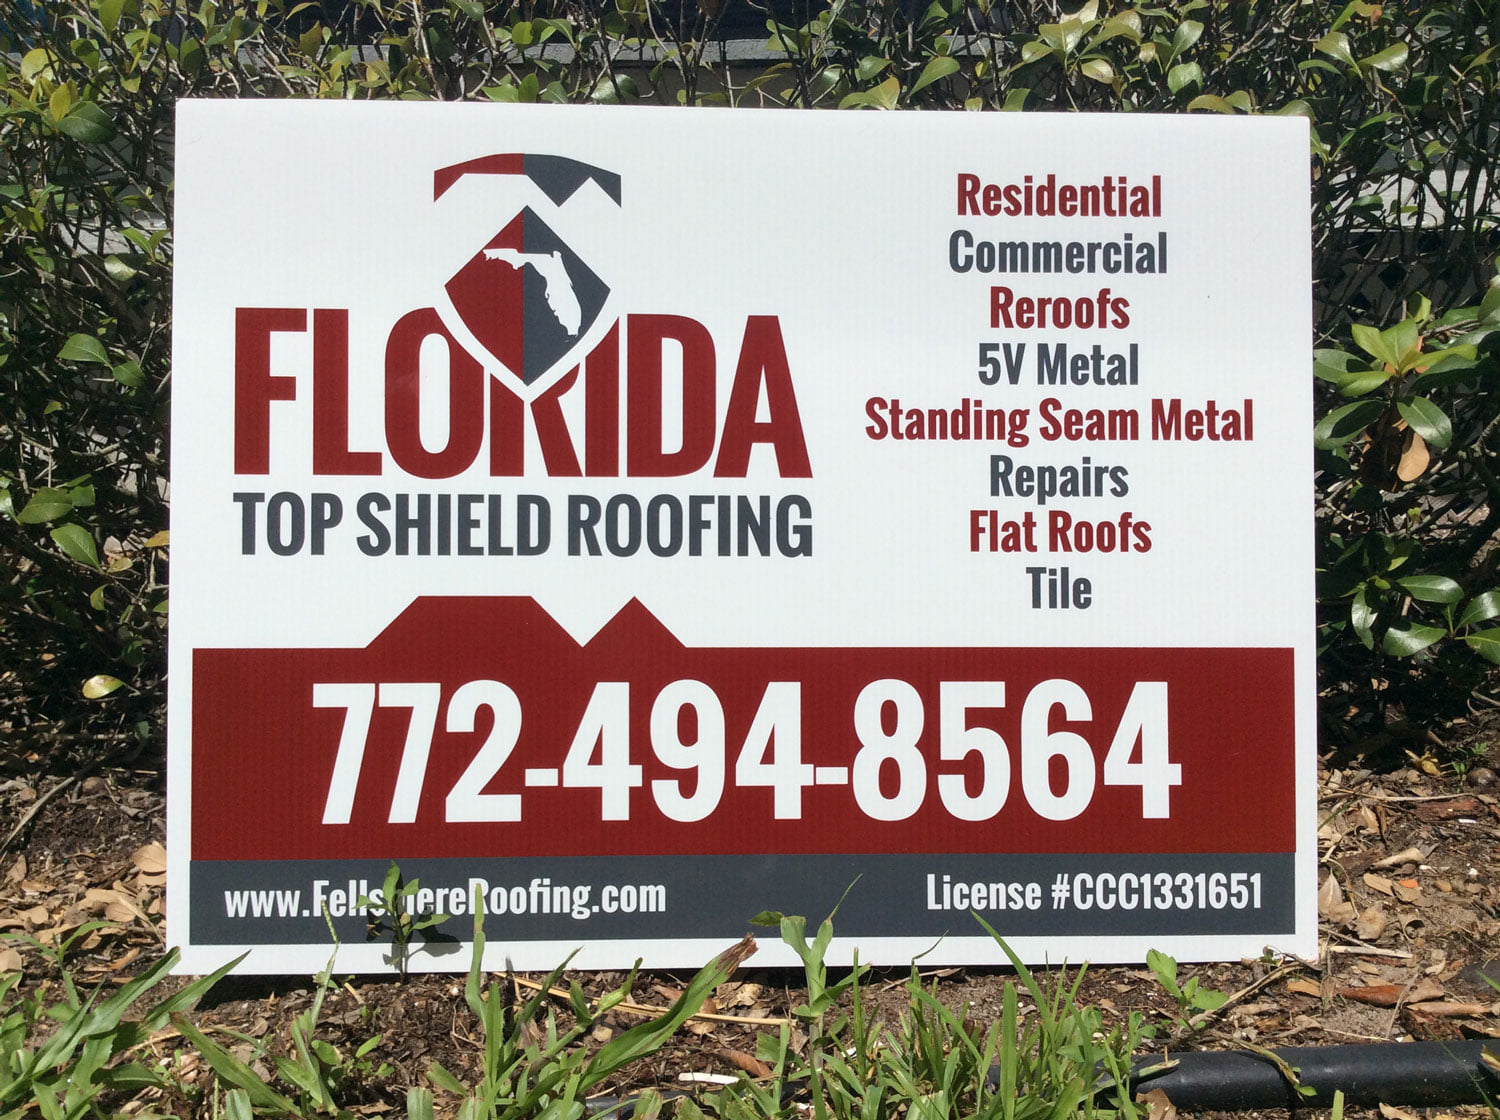 Yard Signs: Florida Top Shield Roofing